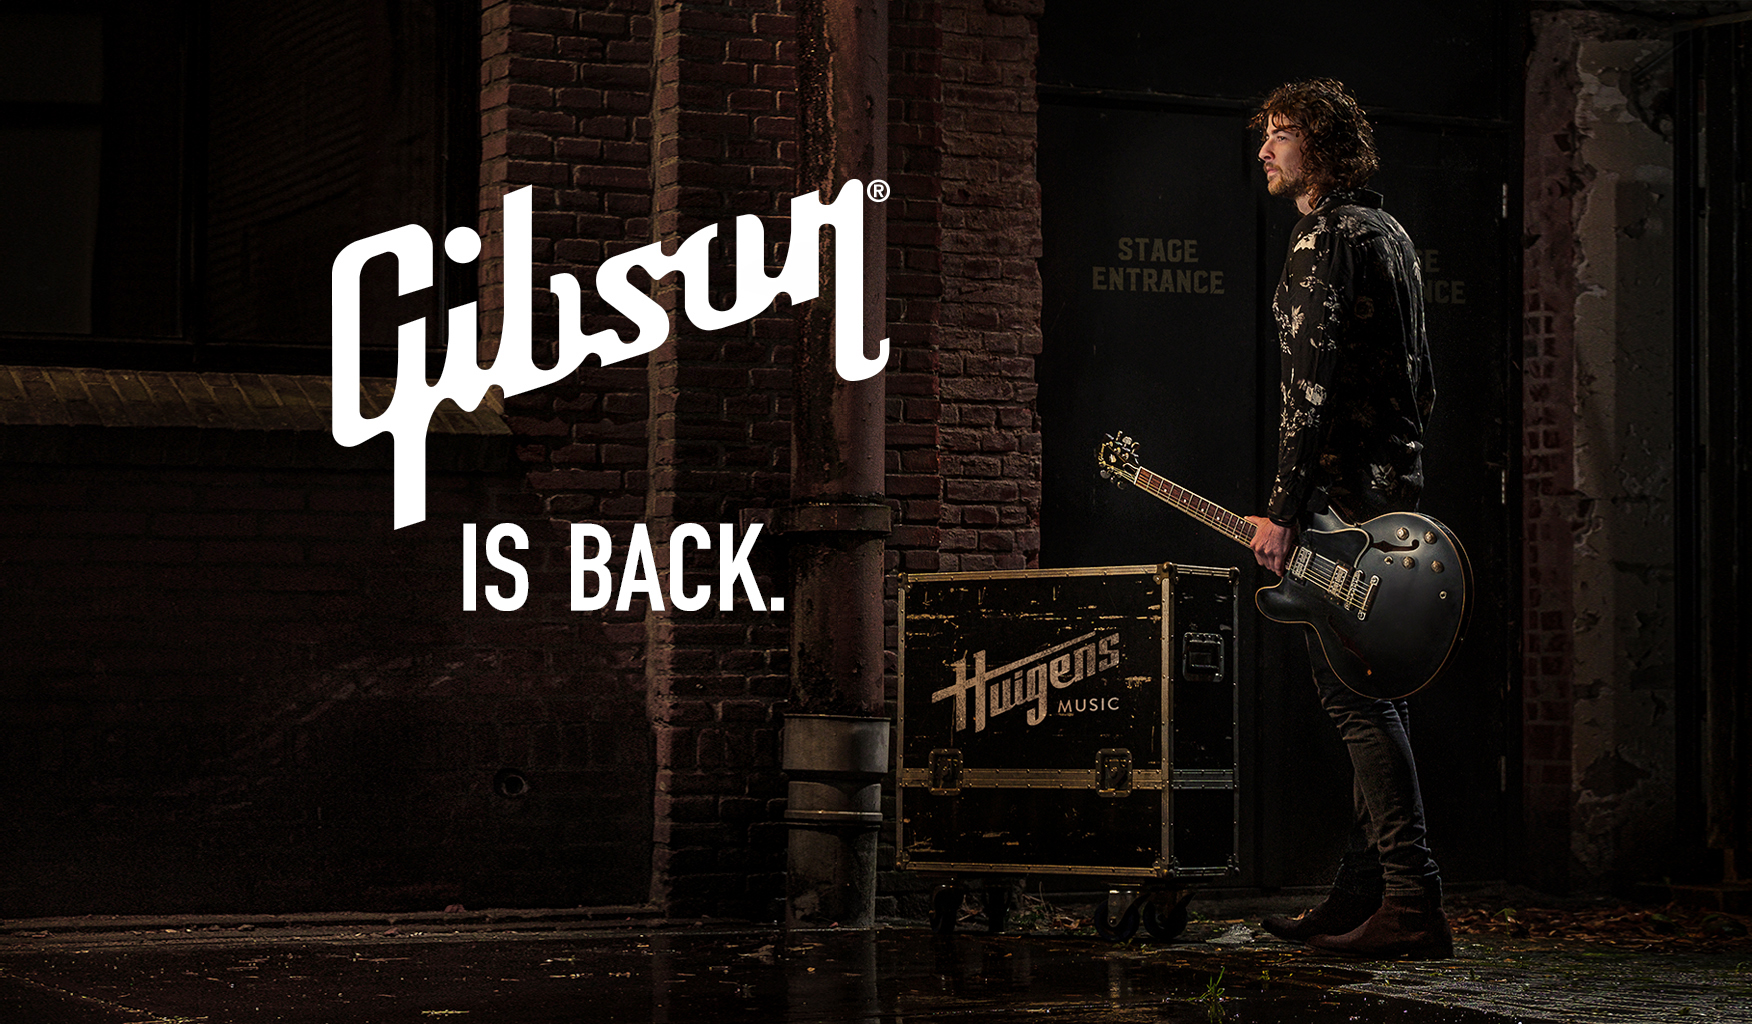 Gibson is back! Huigens Music